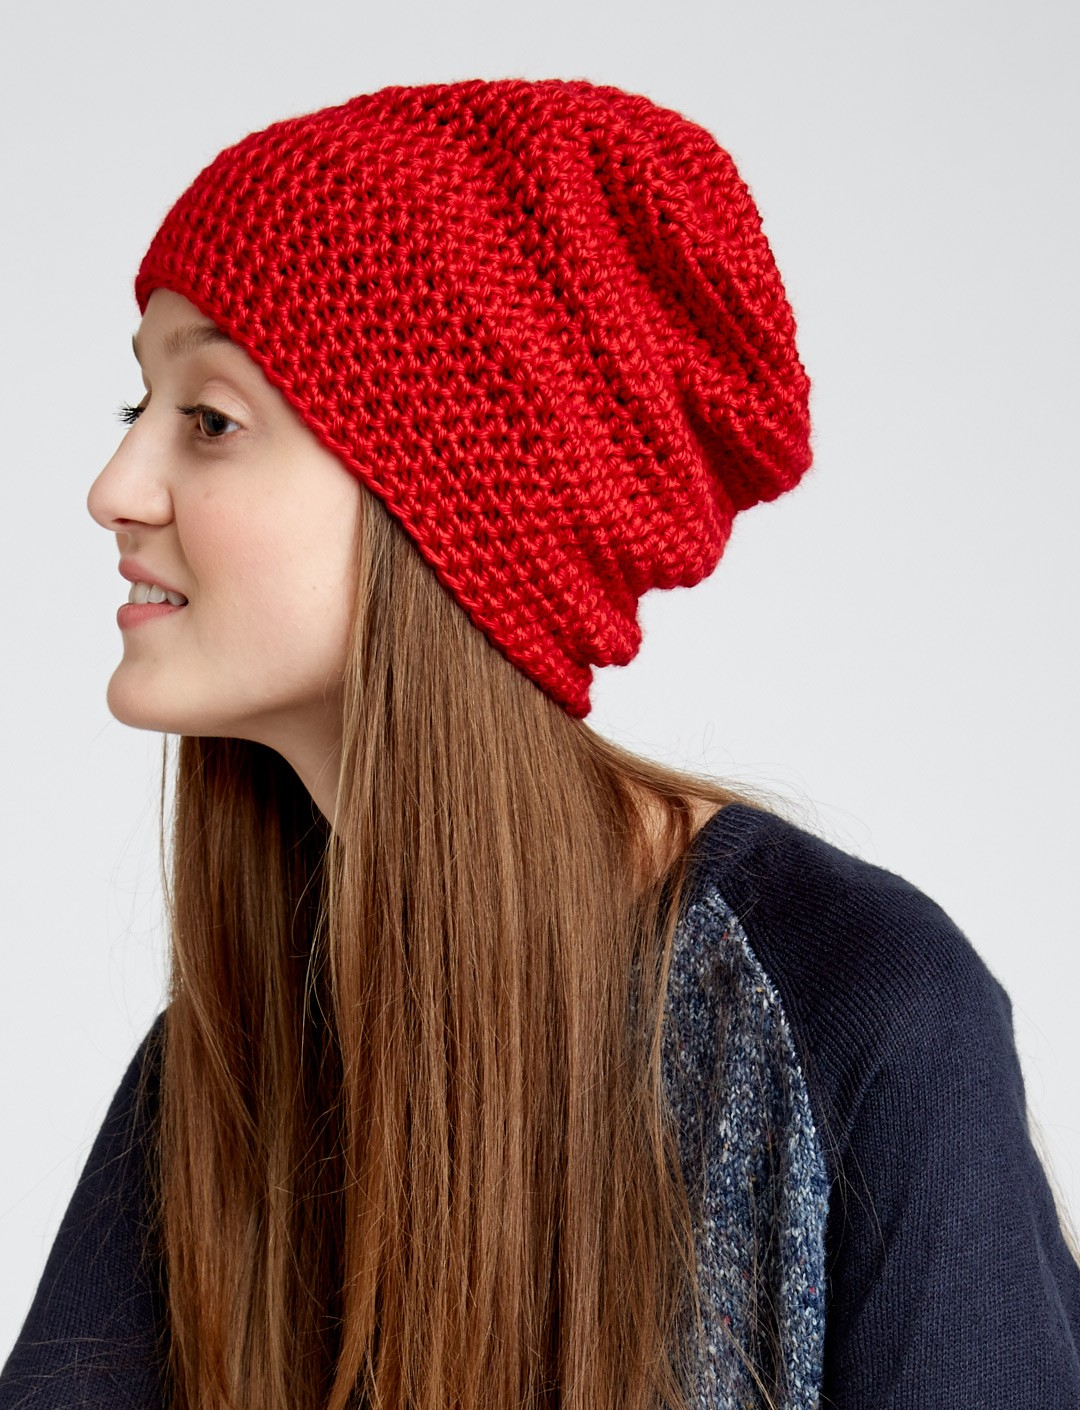 Crochet Hat Patterns Beanie : Slouchy Beanie - Patterns Yarnspirations